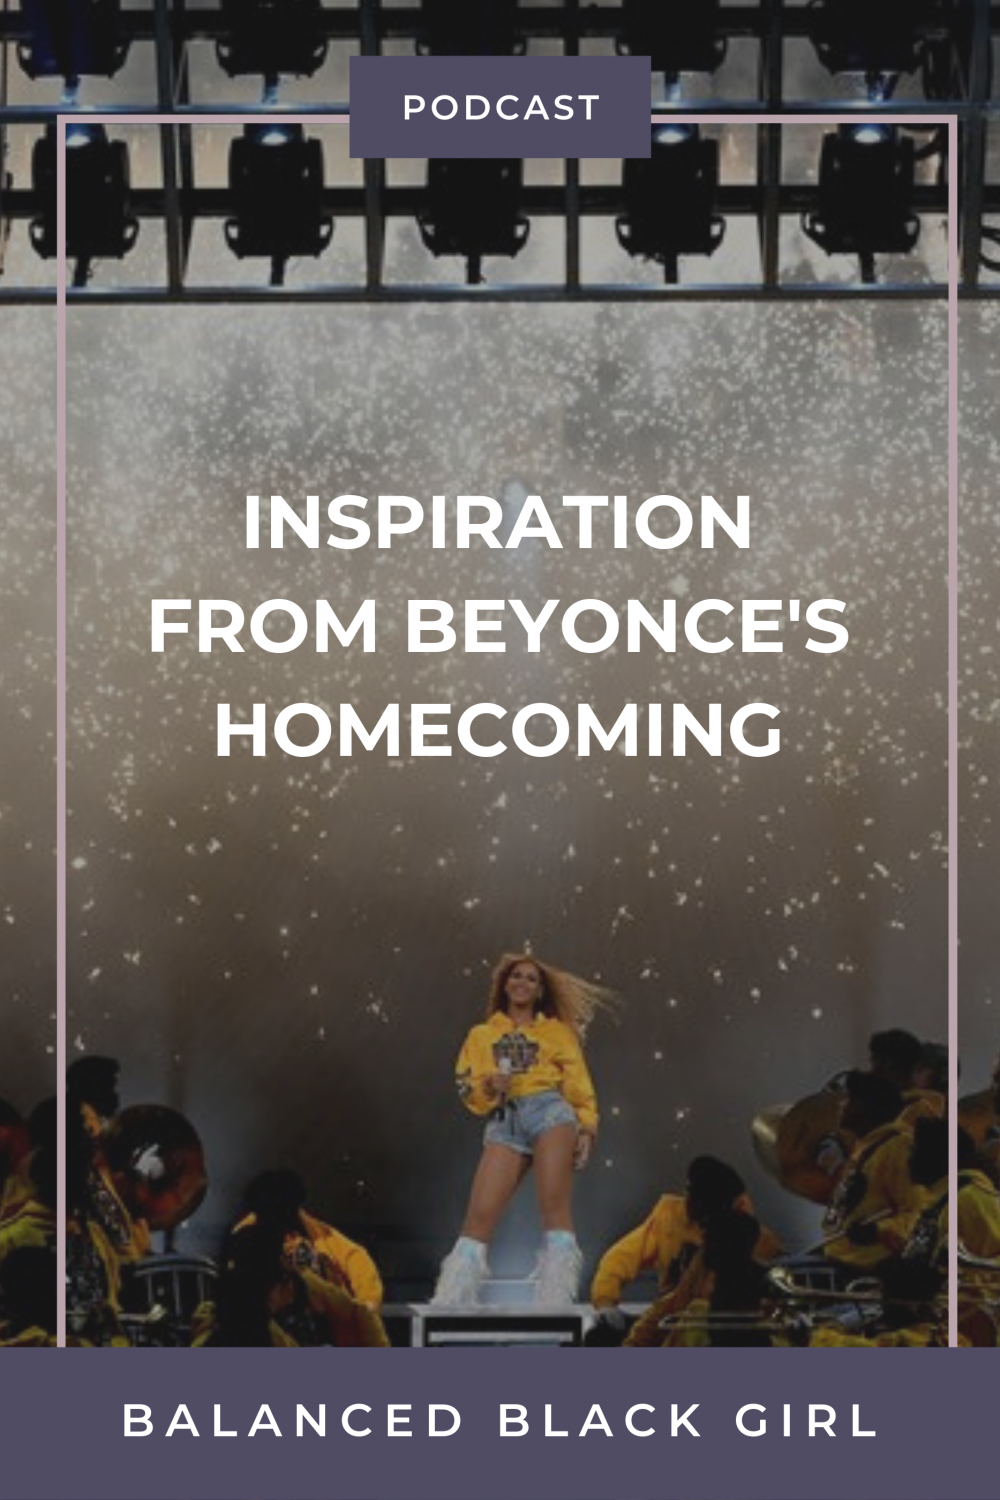 Feel Good Friday 15: Inspiration from Beyoncé's Homecoming